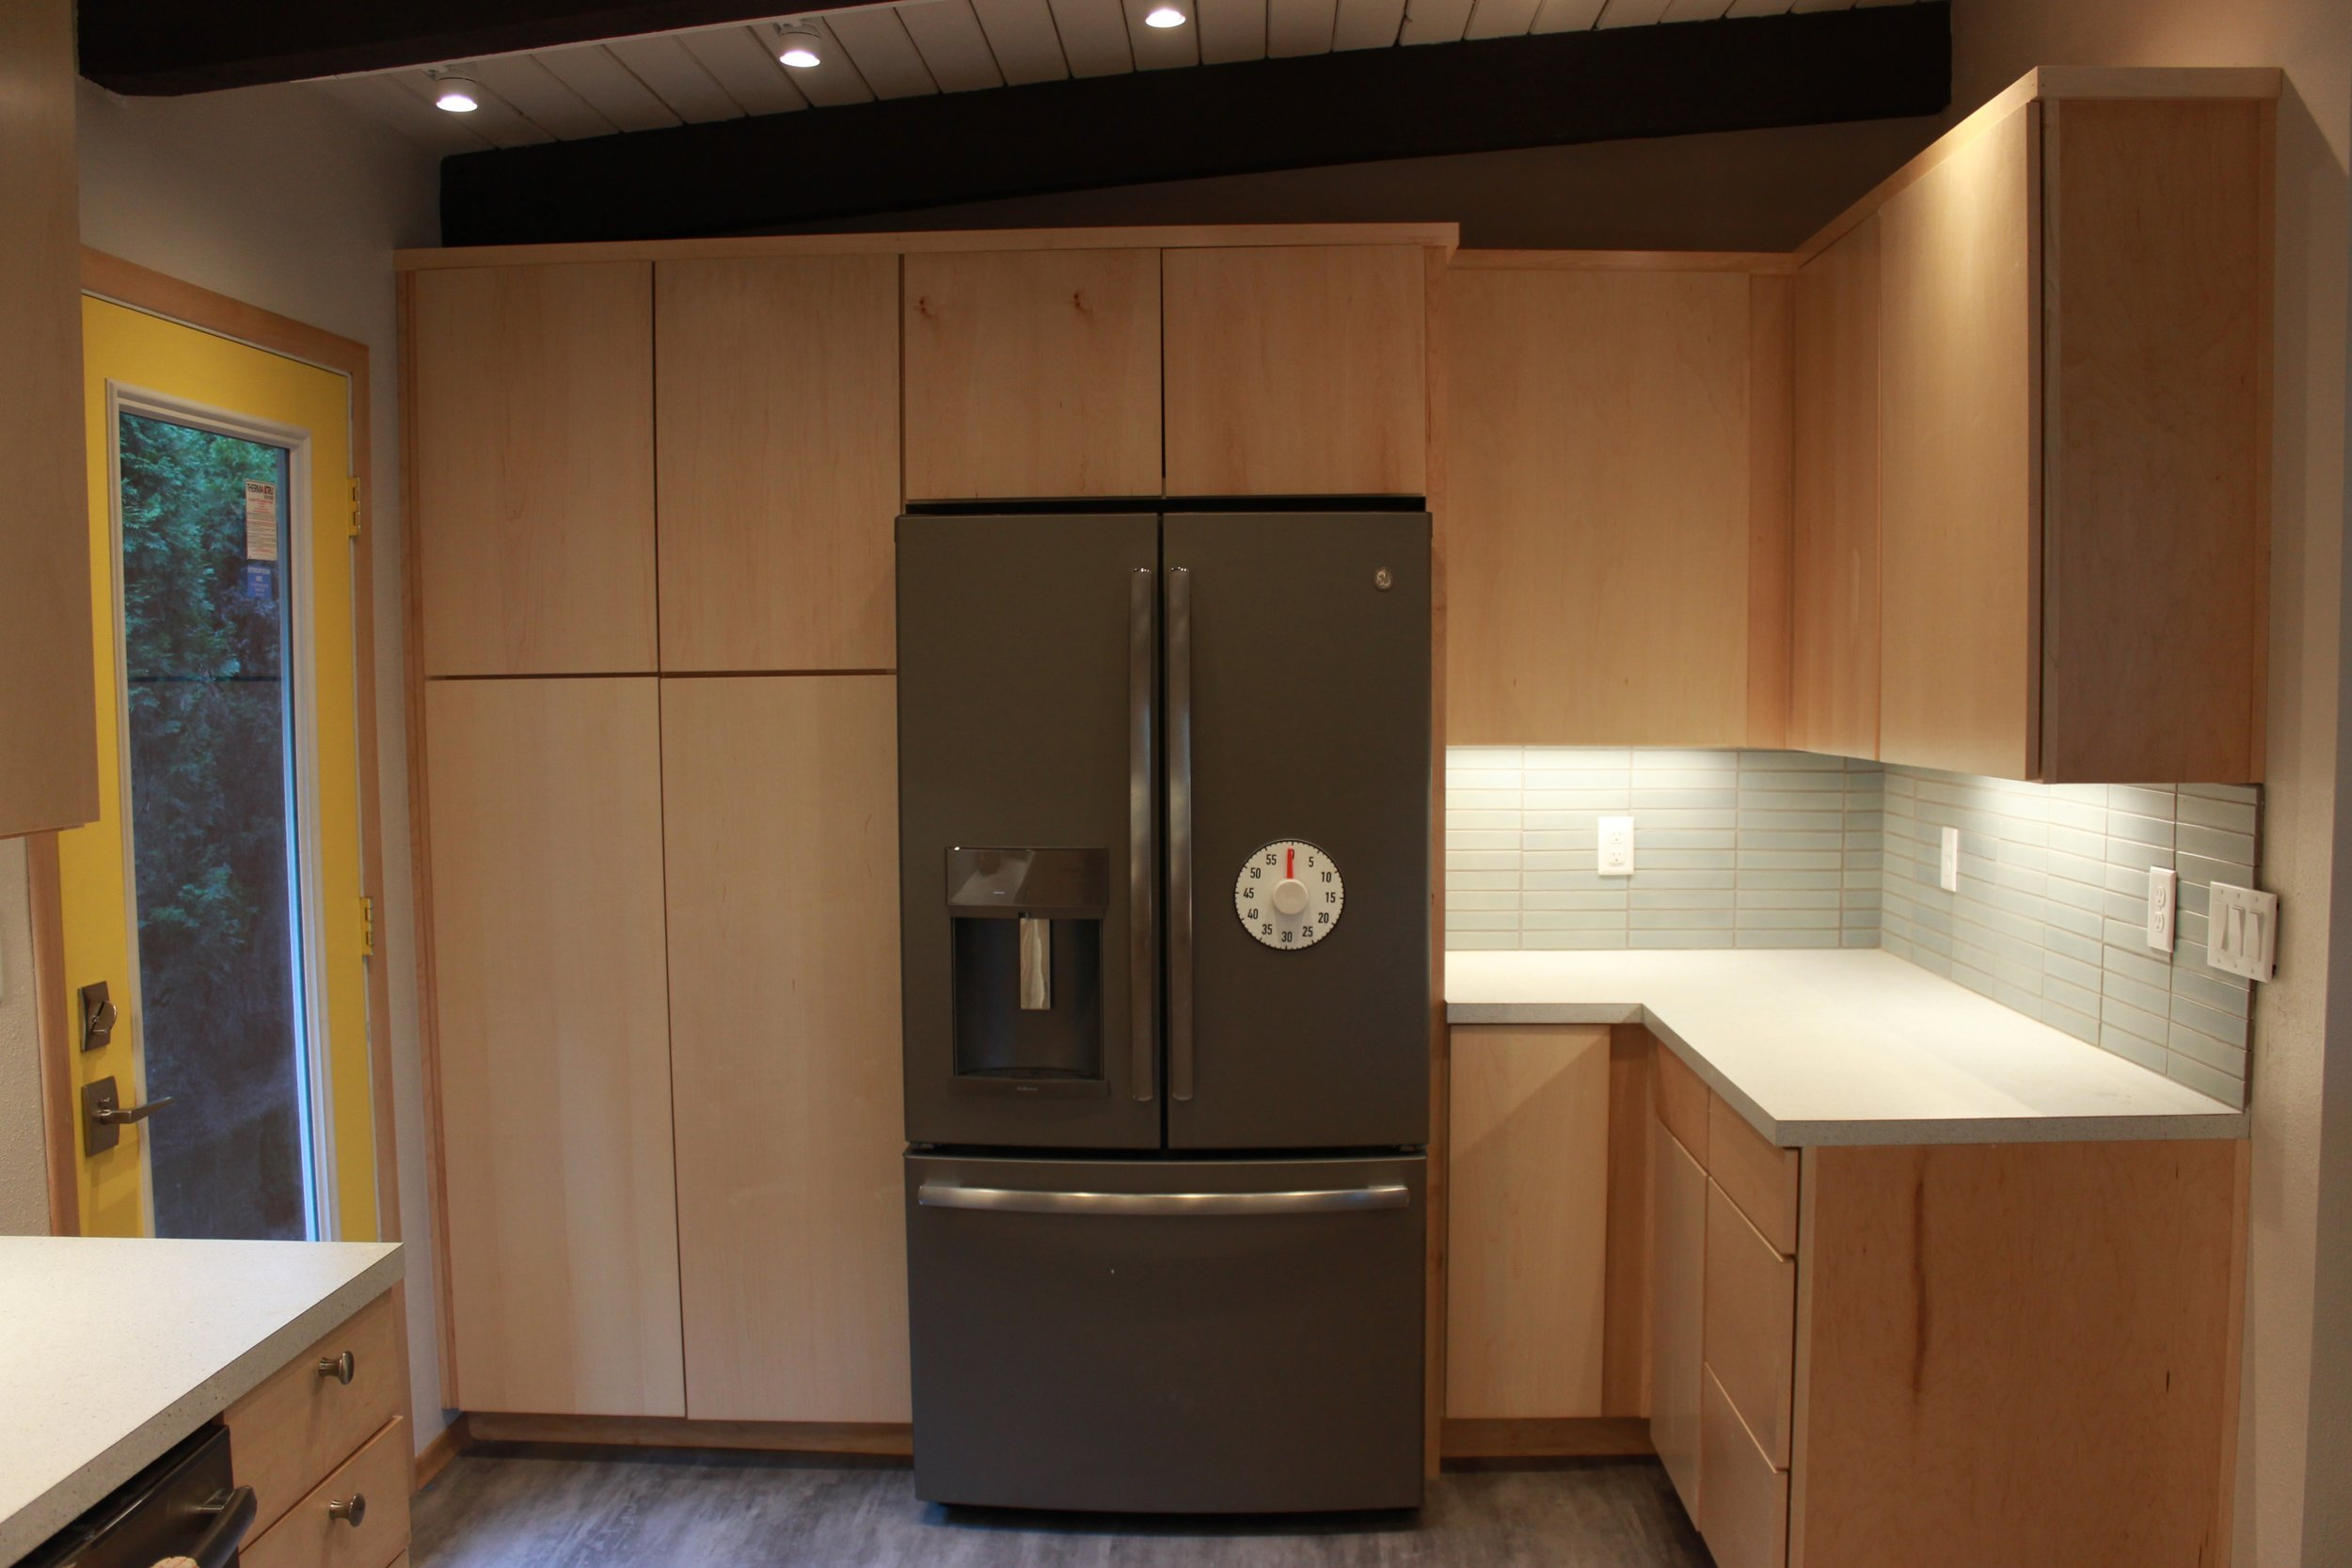 kitchen-fridge-side.jpg